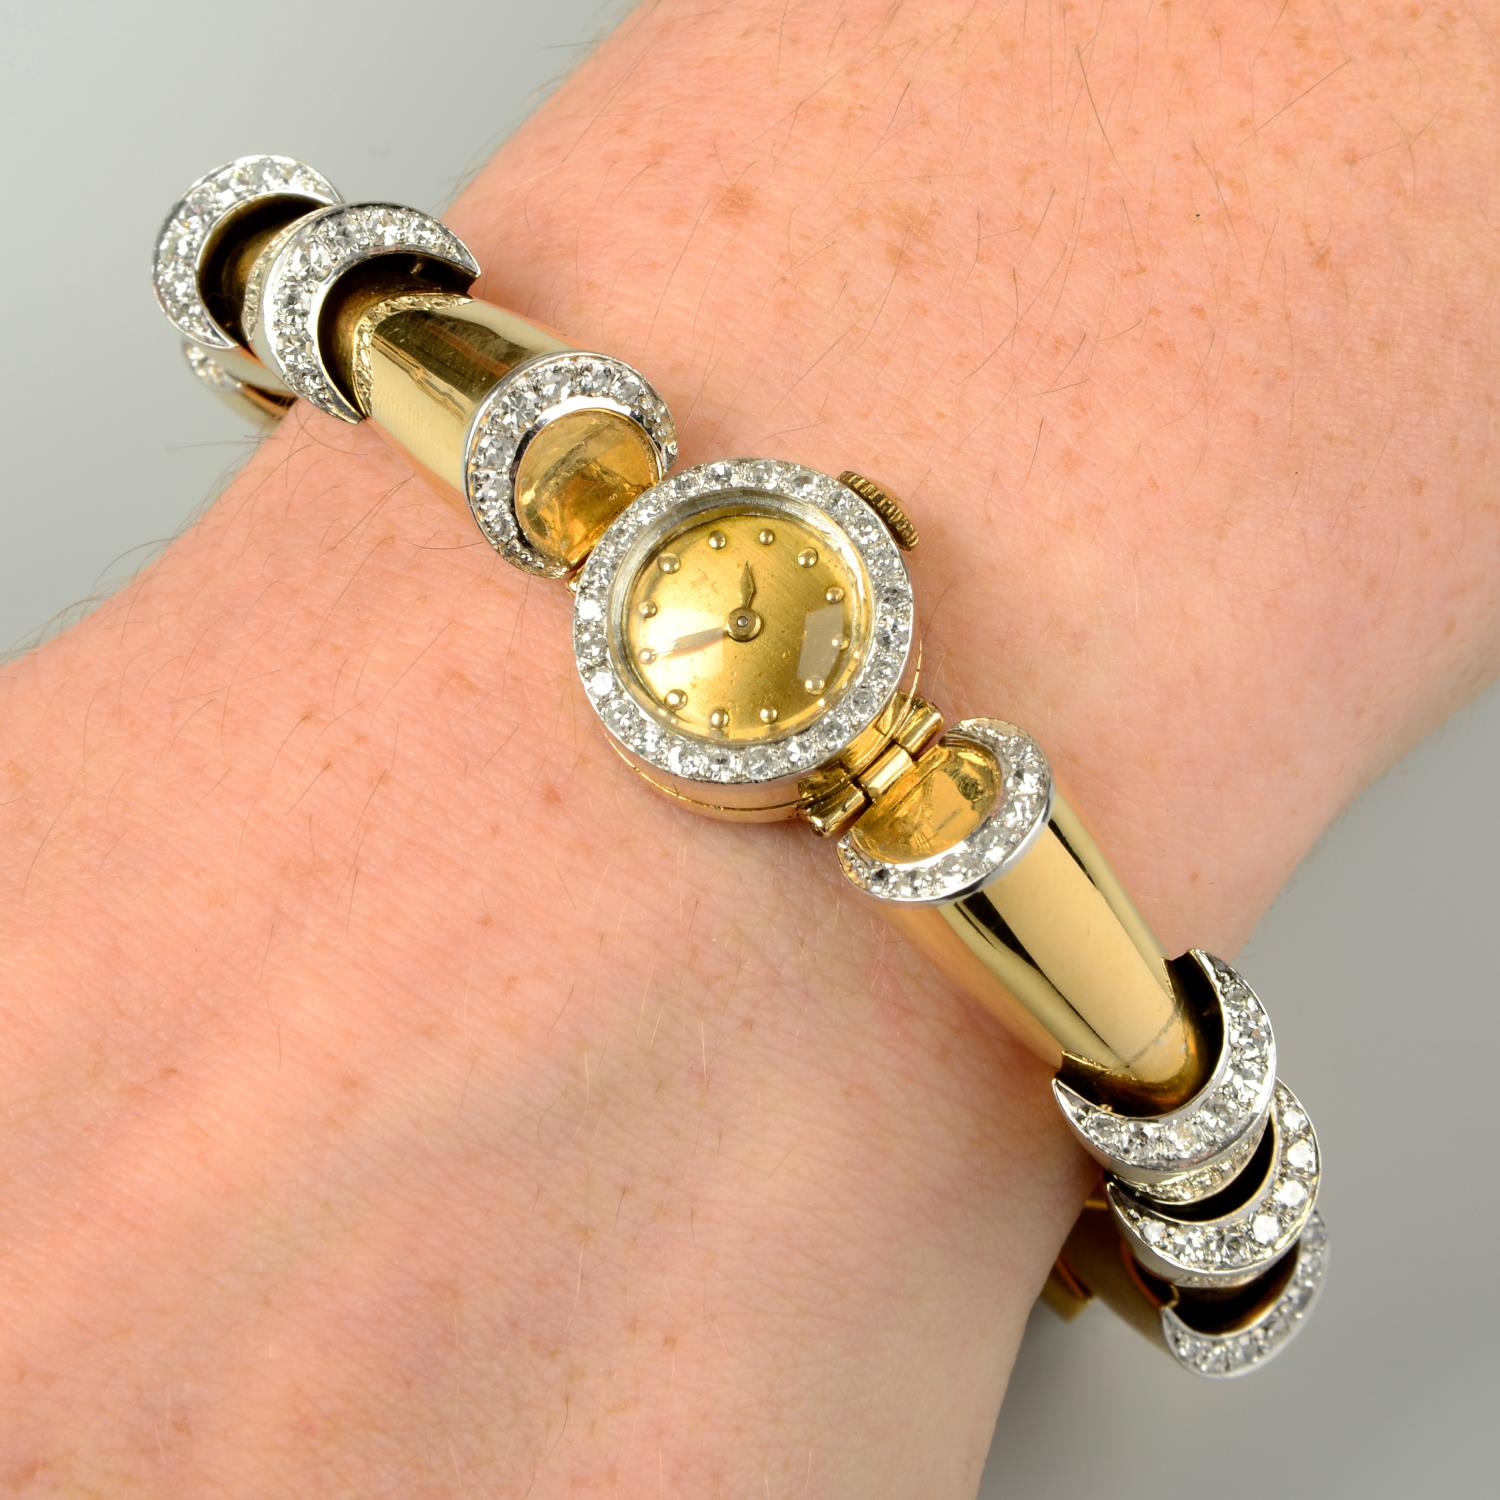 A 1940s gold diamond cocktail watch.Estimated total diamond weight 1.35cts,